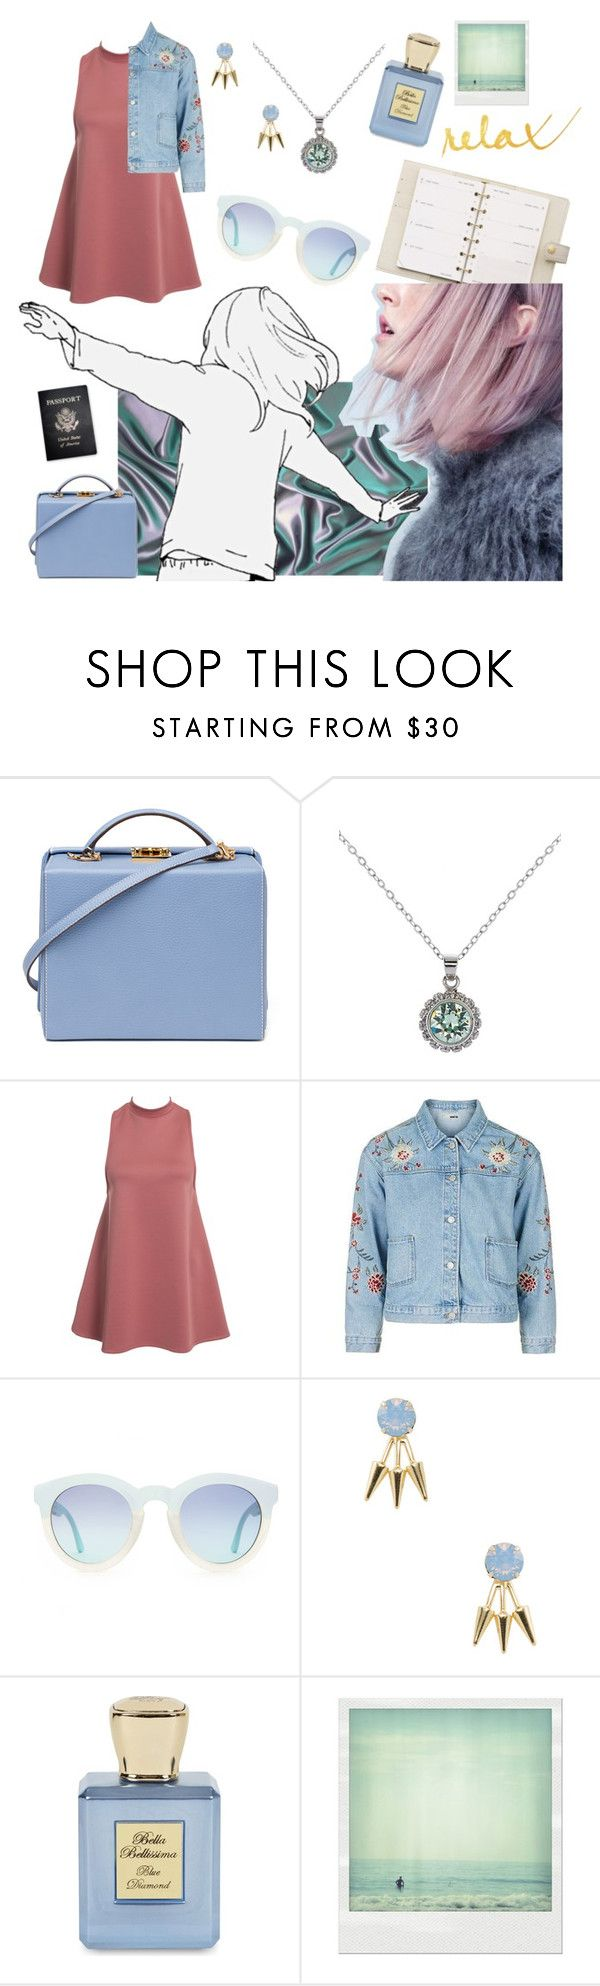 """Relaxed"" by georgia-grace-sheldon ❤ liked on Polyvore featuring Louis Vuitton, Mark Cross, Passport, Ted Baker, NLY Trend, Topshop, Gemma Crus, Bella Bellissima and Polaroid"